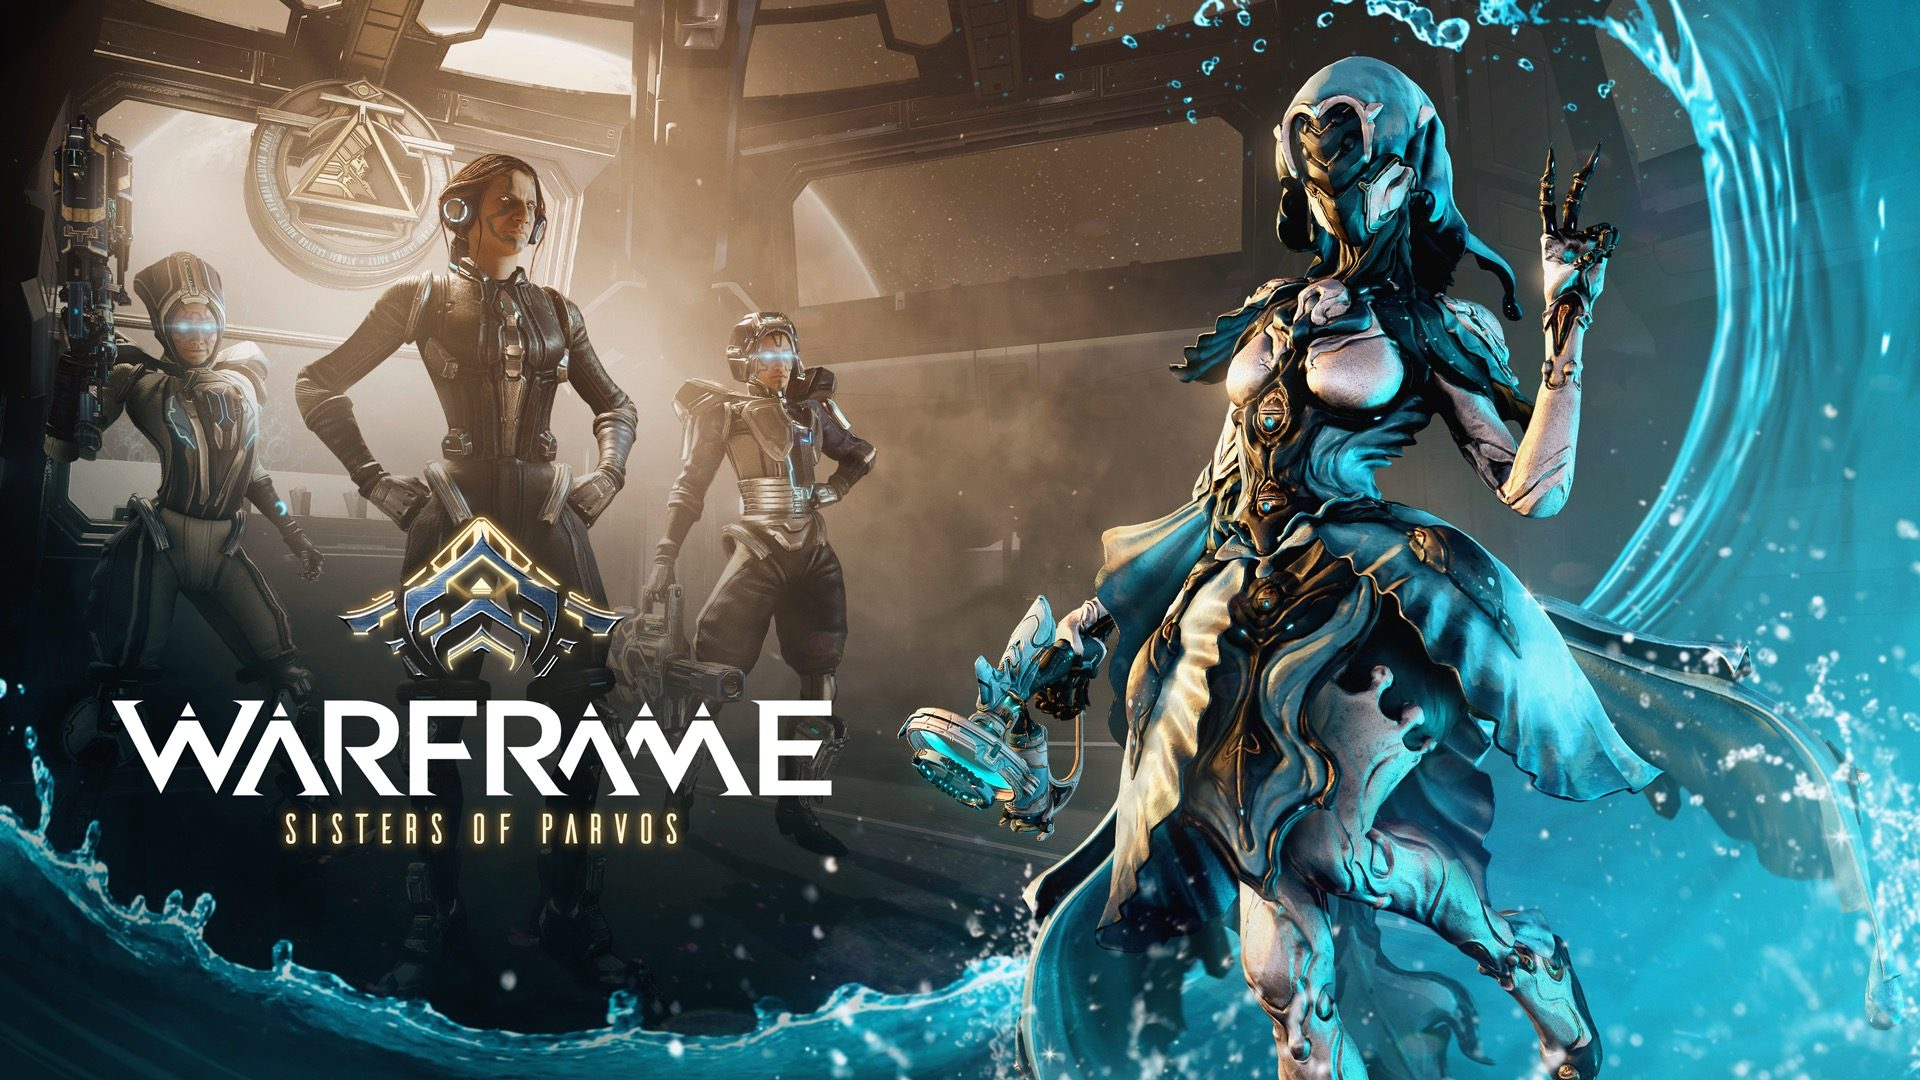 bend-h2o-at-will-as-the-new-wave-driving-warframe-yareli